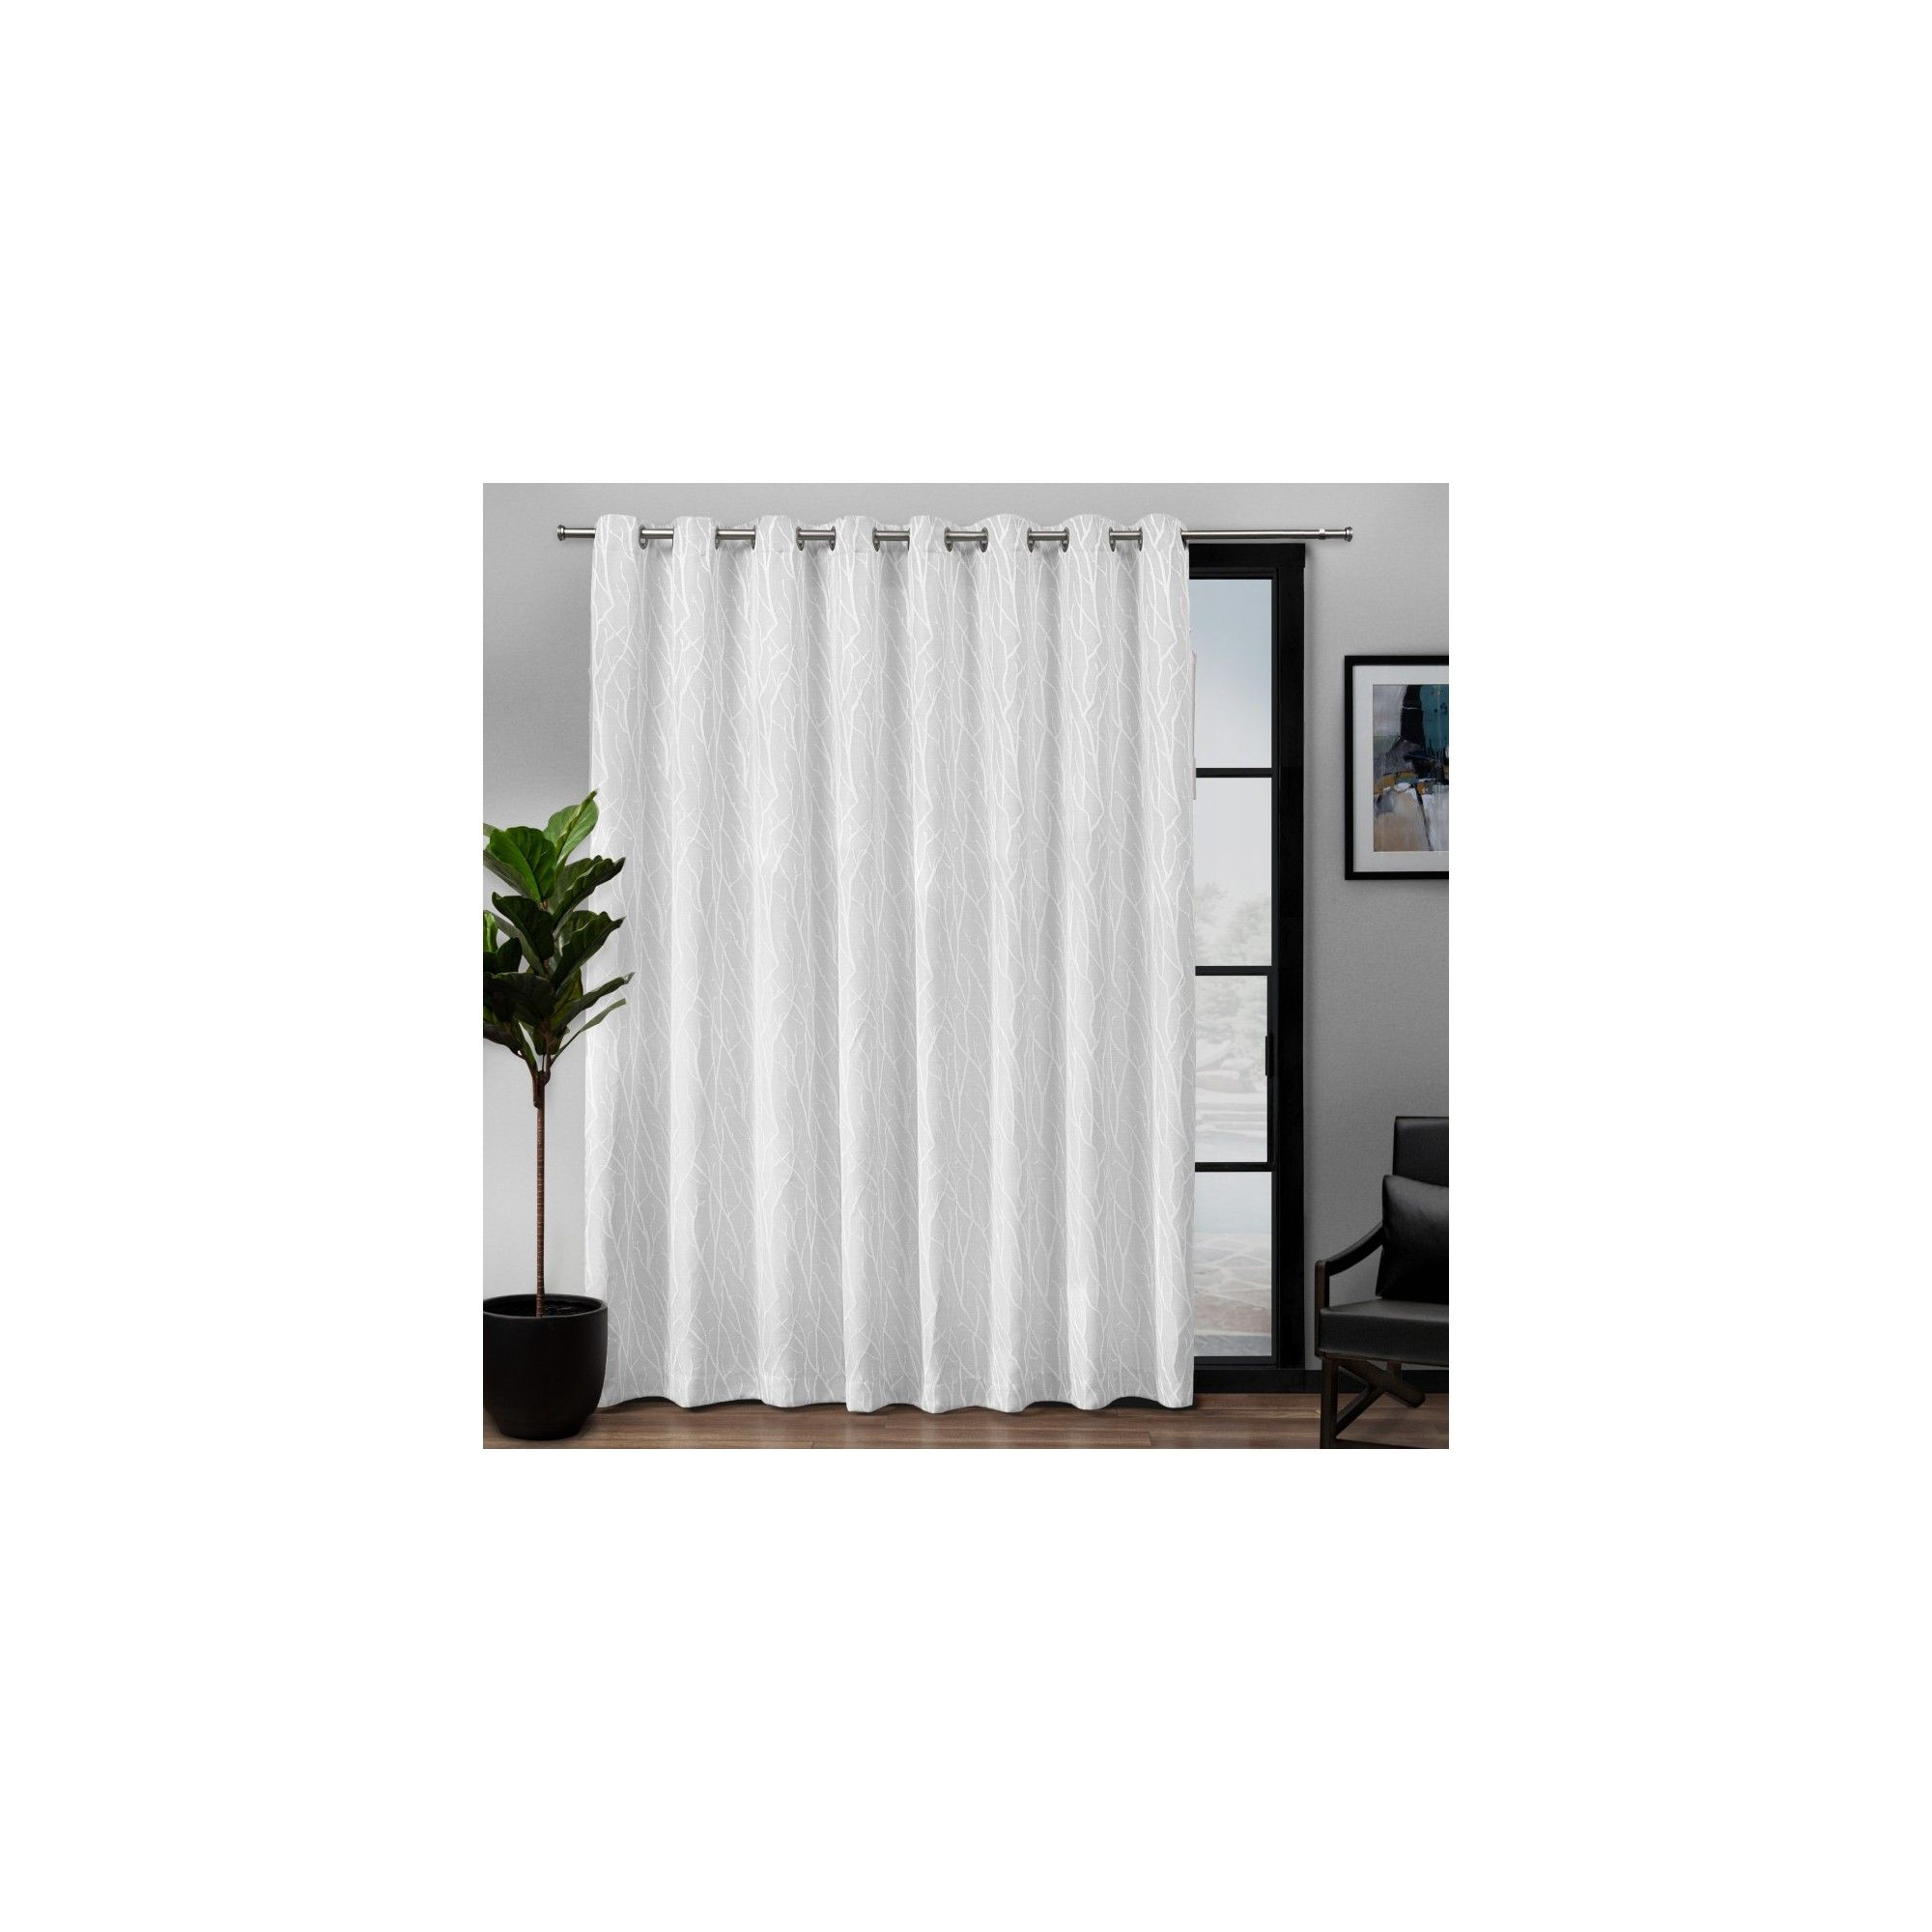 """108""""x84"""" Forest Hill Patio Woven Blackout Grommet Top Single Regarding Patio Grommet Top Single Curtain Panels (View 12 of 20)"""